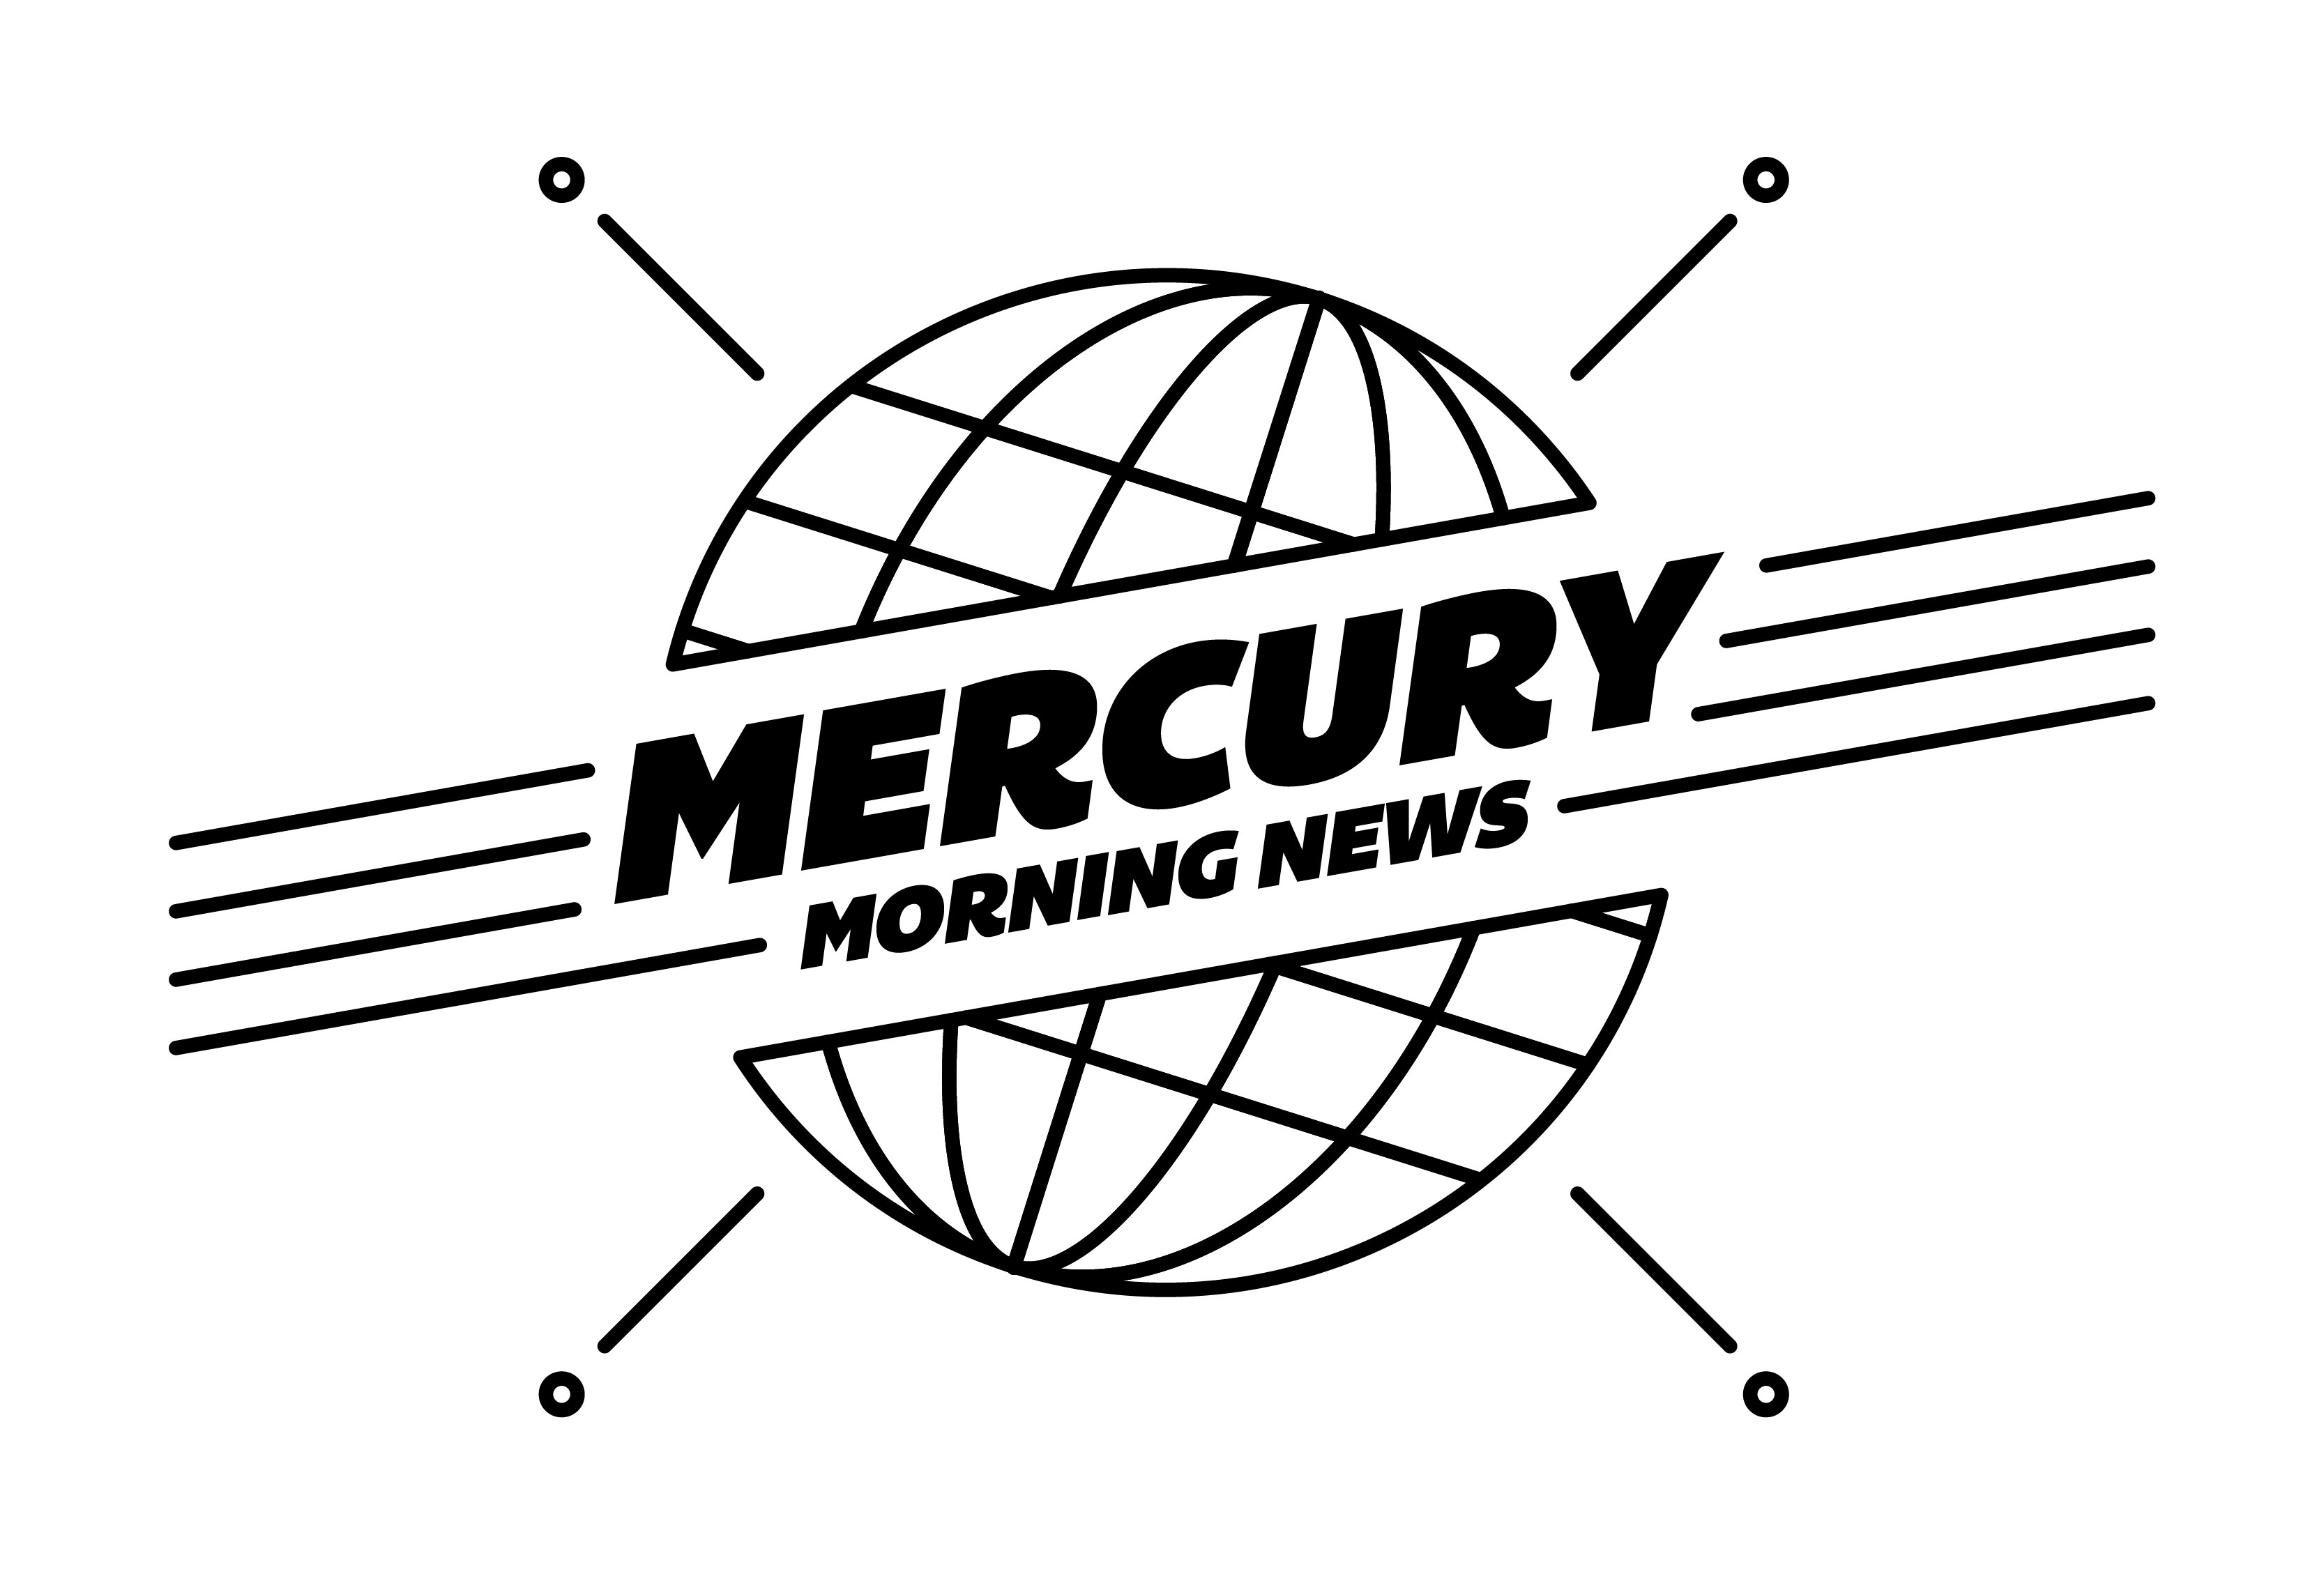 Mercury Morning News 10/13